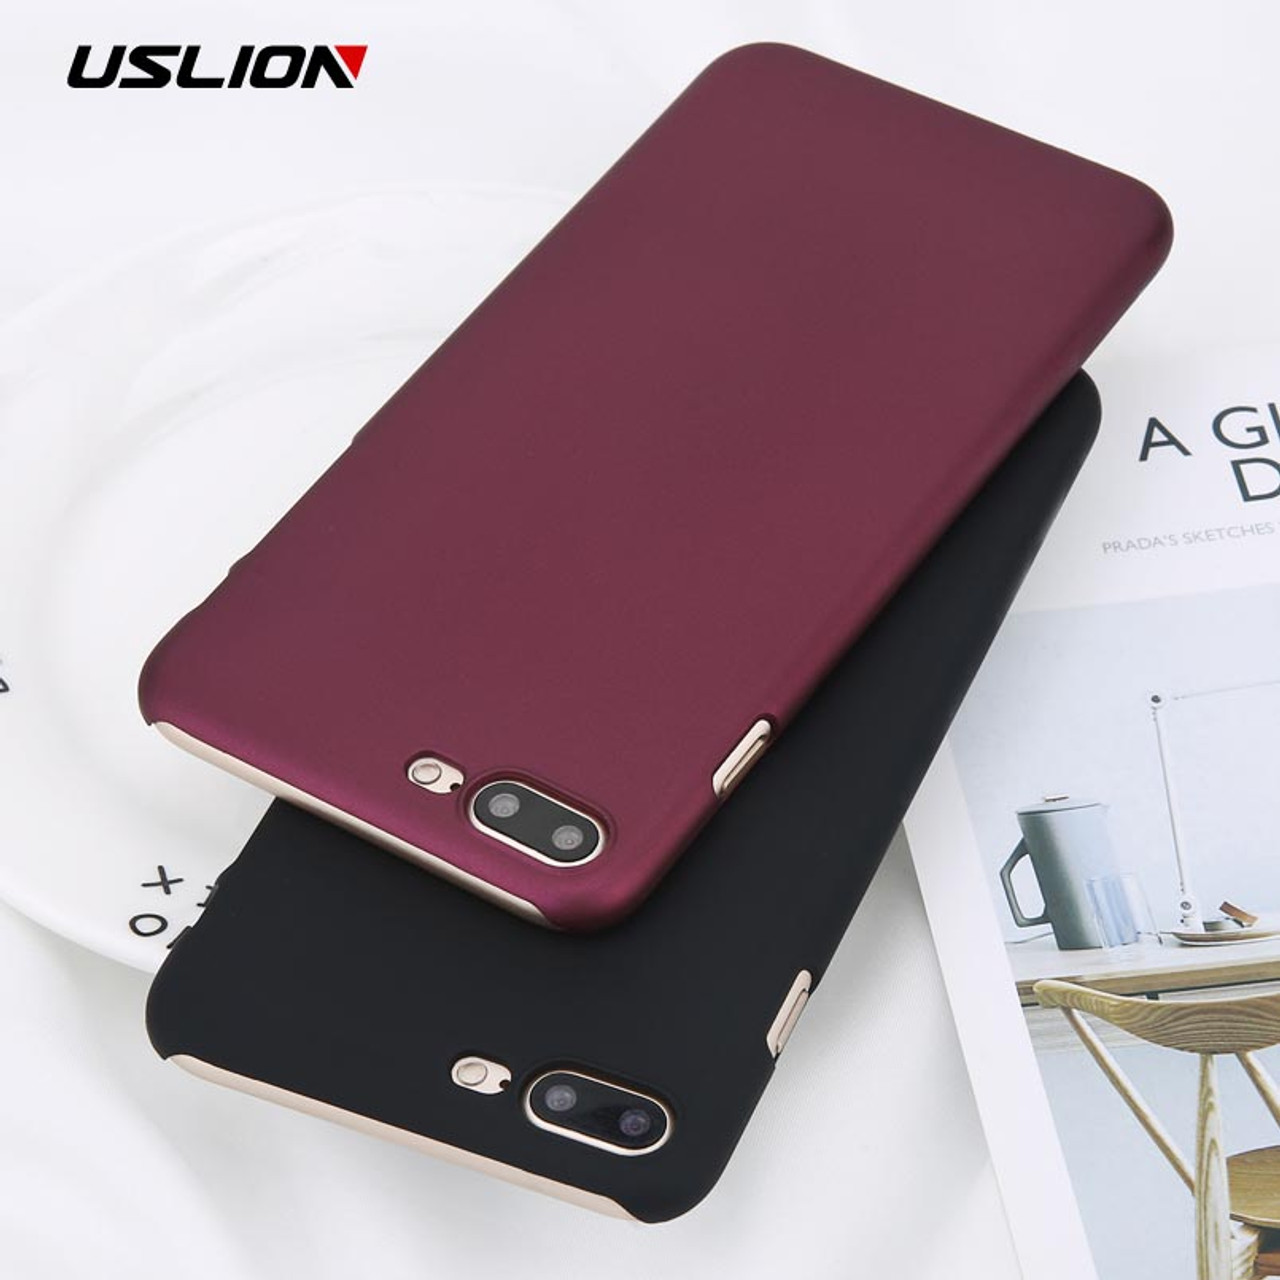 Uslion Phone Case For Iphone 6 6s Plus Simple Wine Red Color Matte Cases Frosted Hard Pc Cover For Iphone X 8 7 6s Plus 5 5s Se